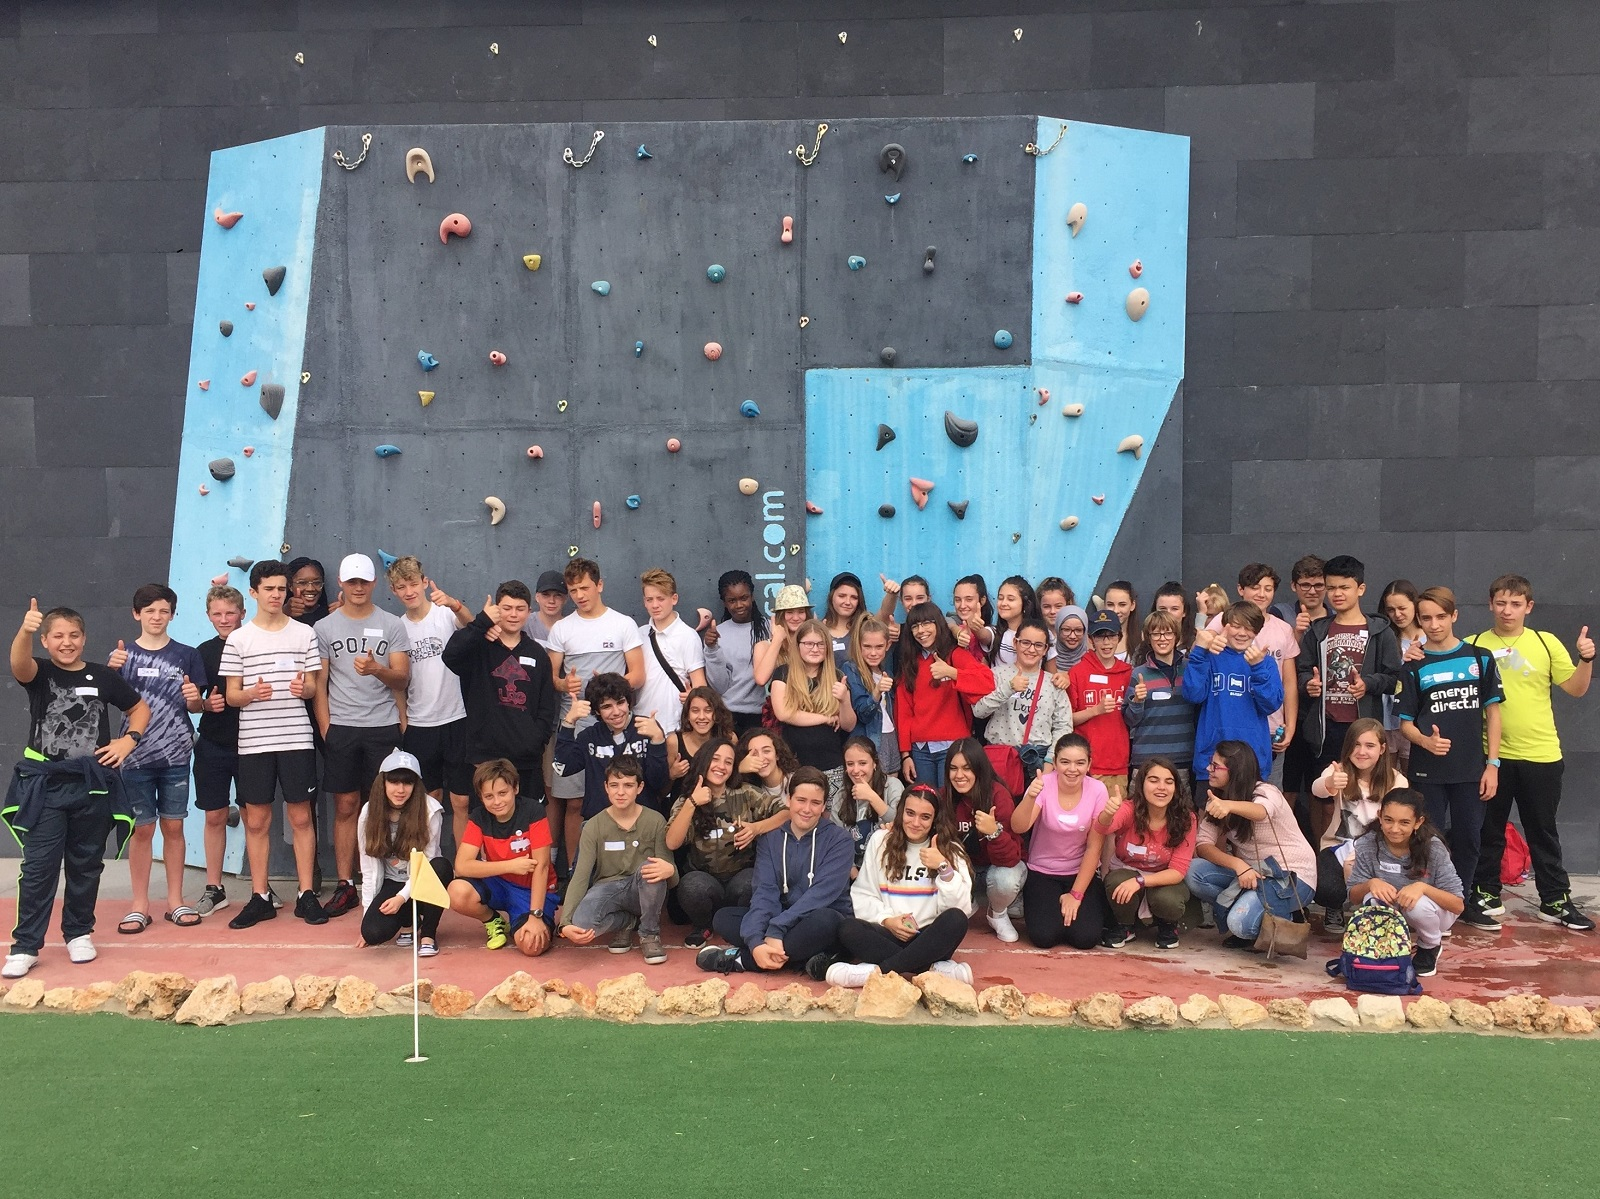 Cobham Free School to Jaén, 20th – 25th October 2017